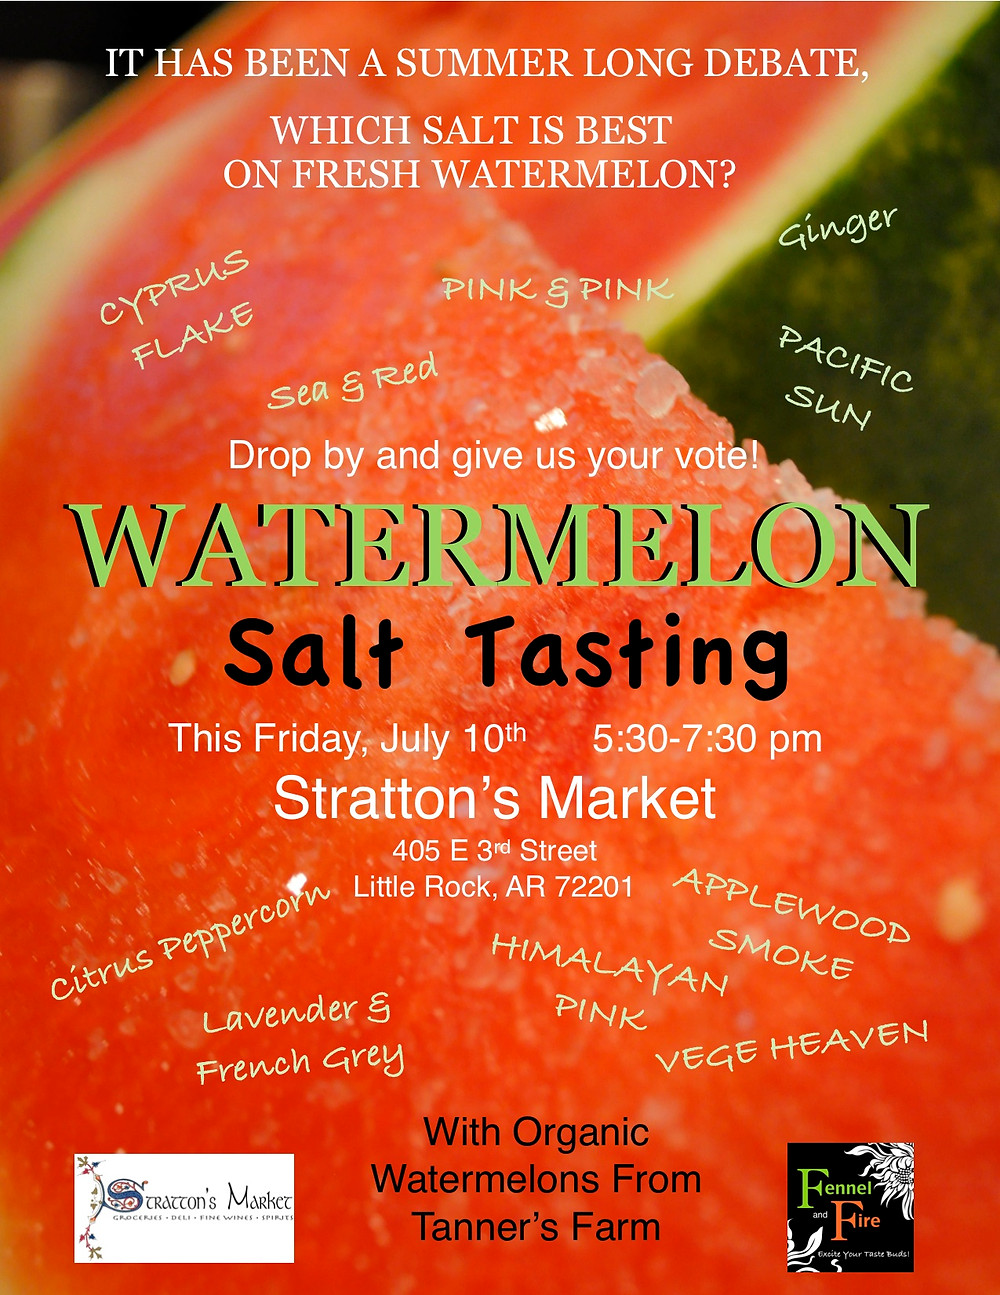 watermelon salt tasting.jpg